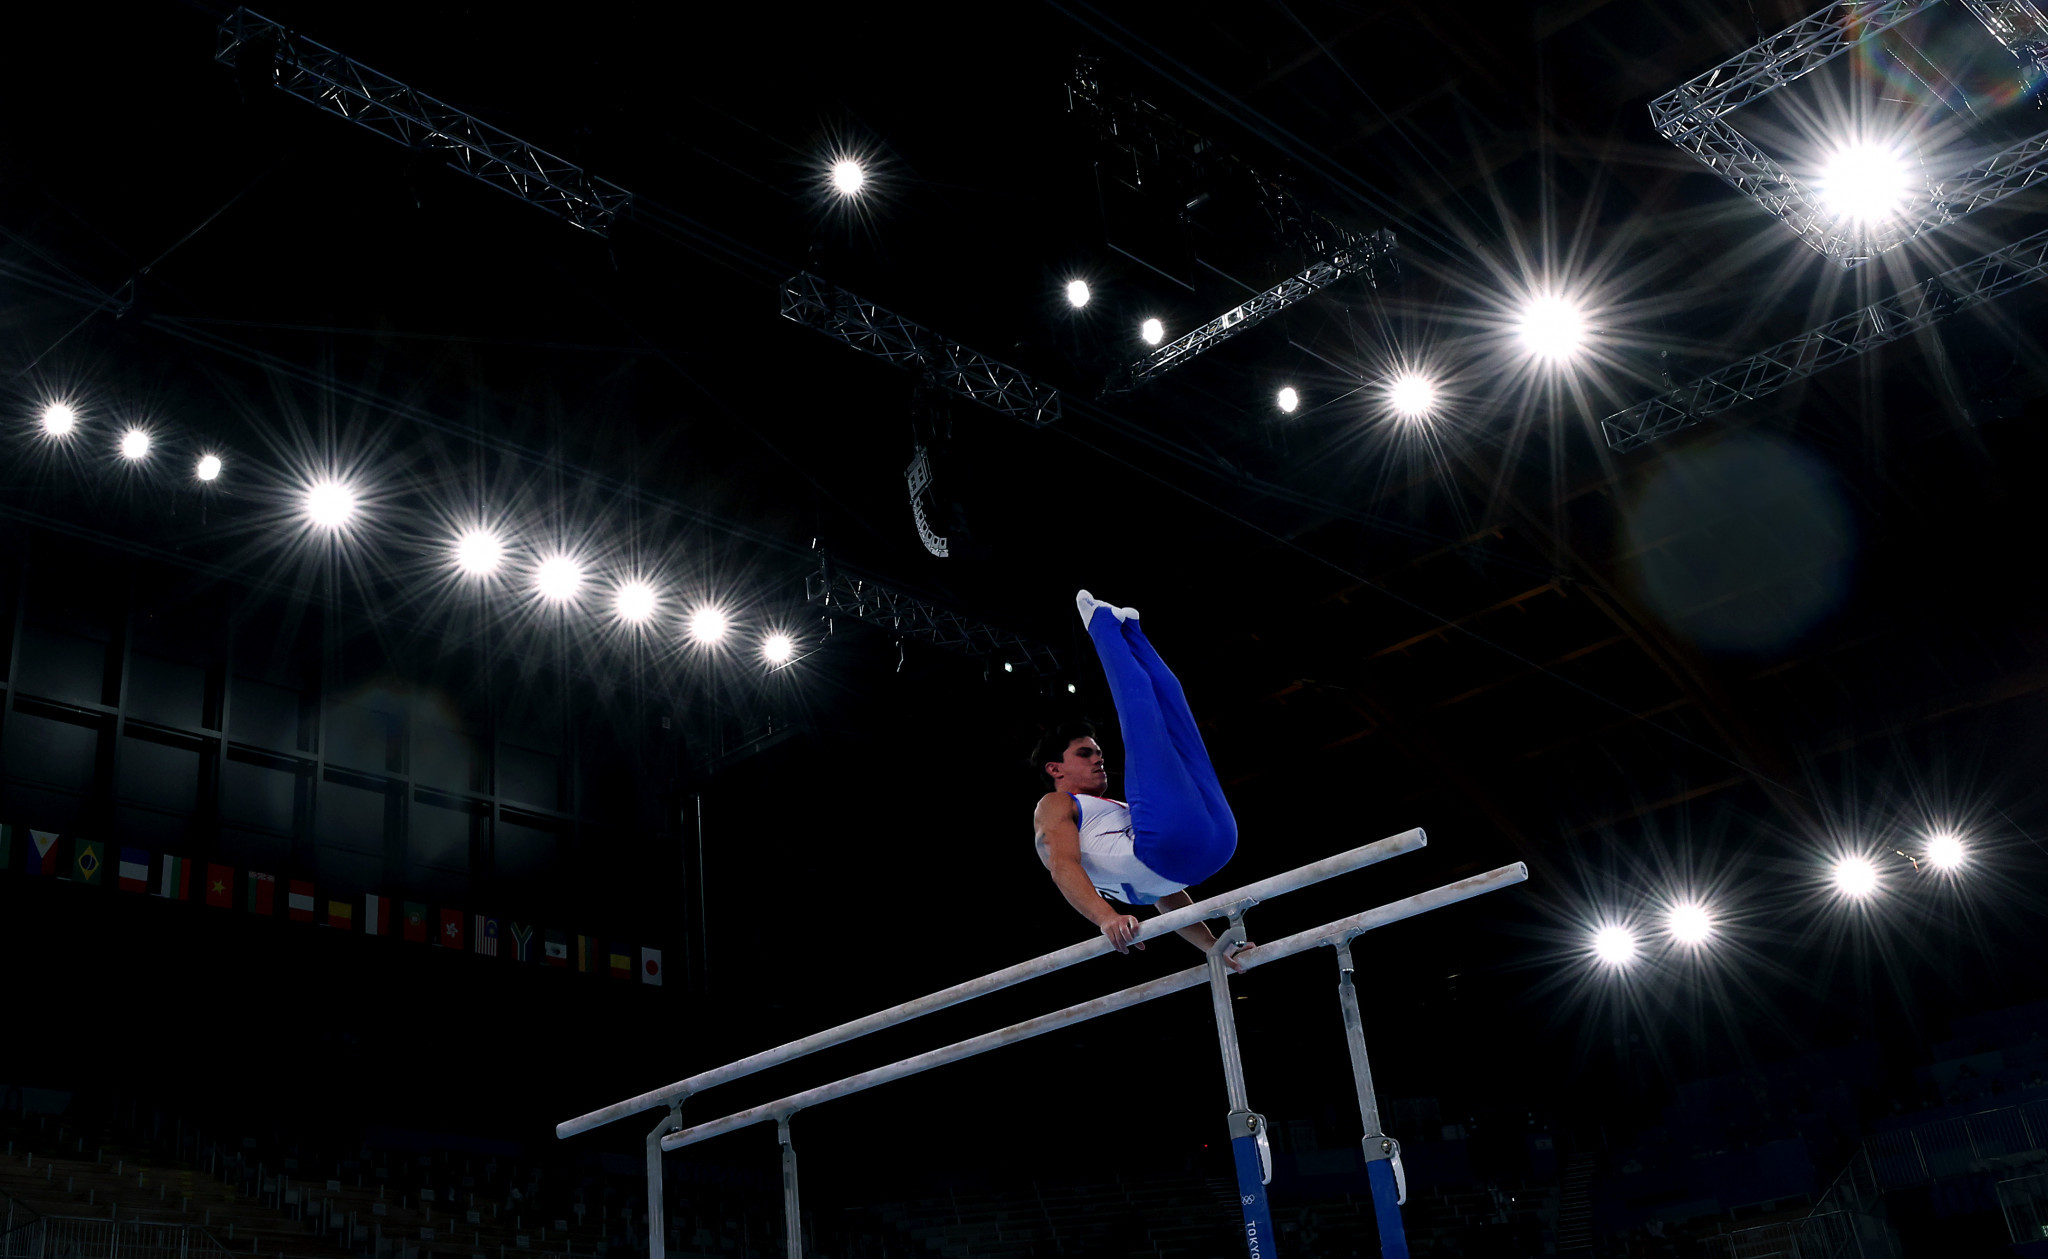 Artur Dalaloyan performed on all the apparatus in the men's artistic team all-around event at Tokyo 2020 ©Getty Images